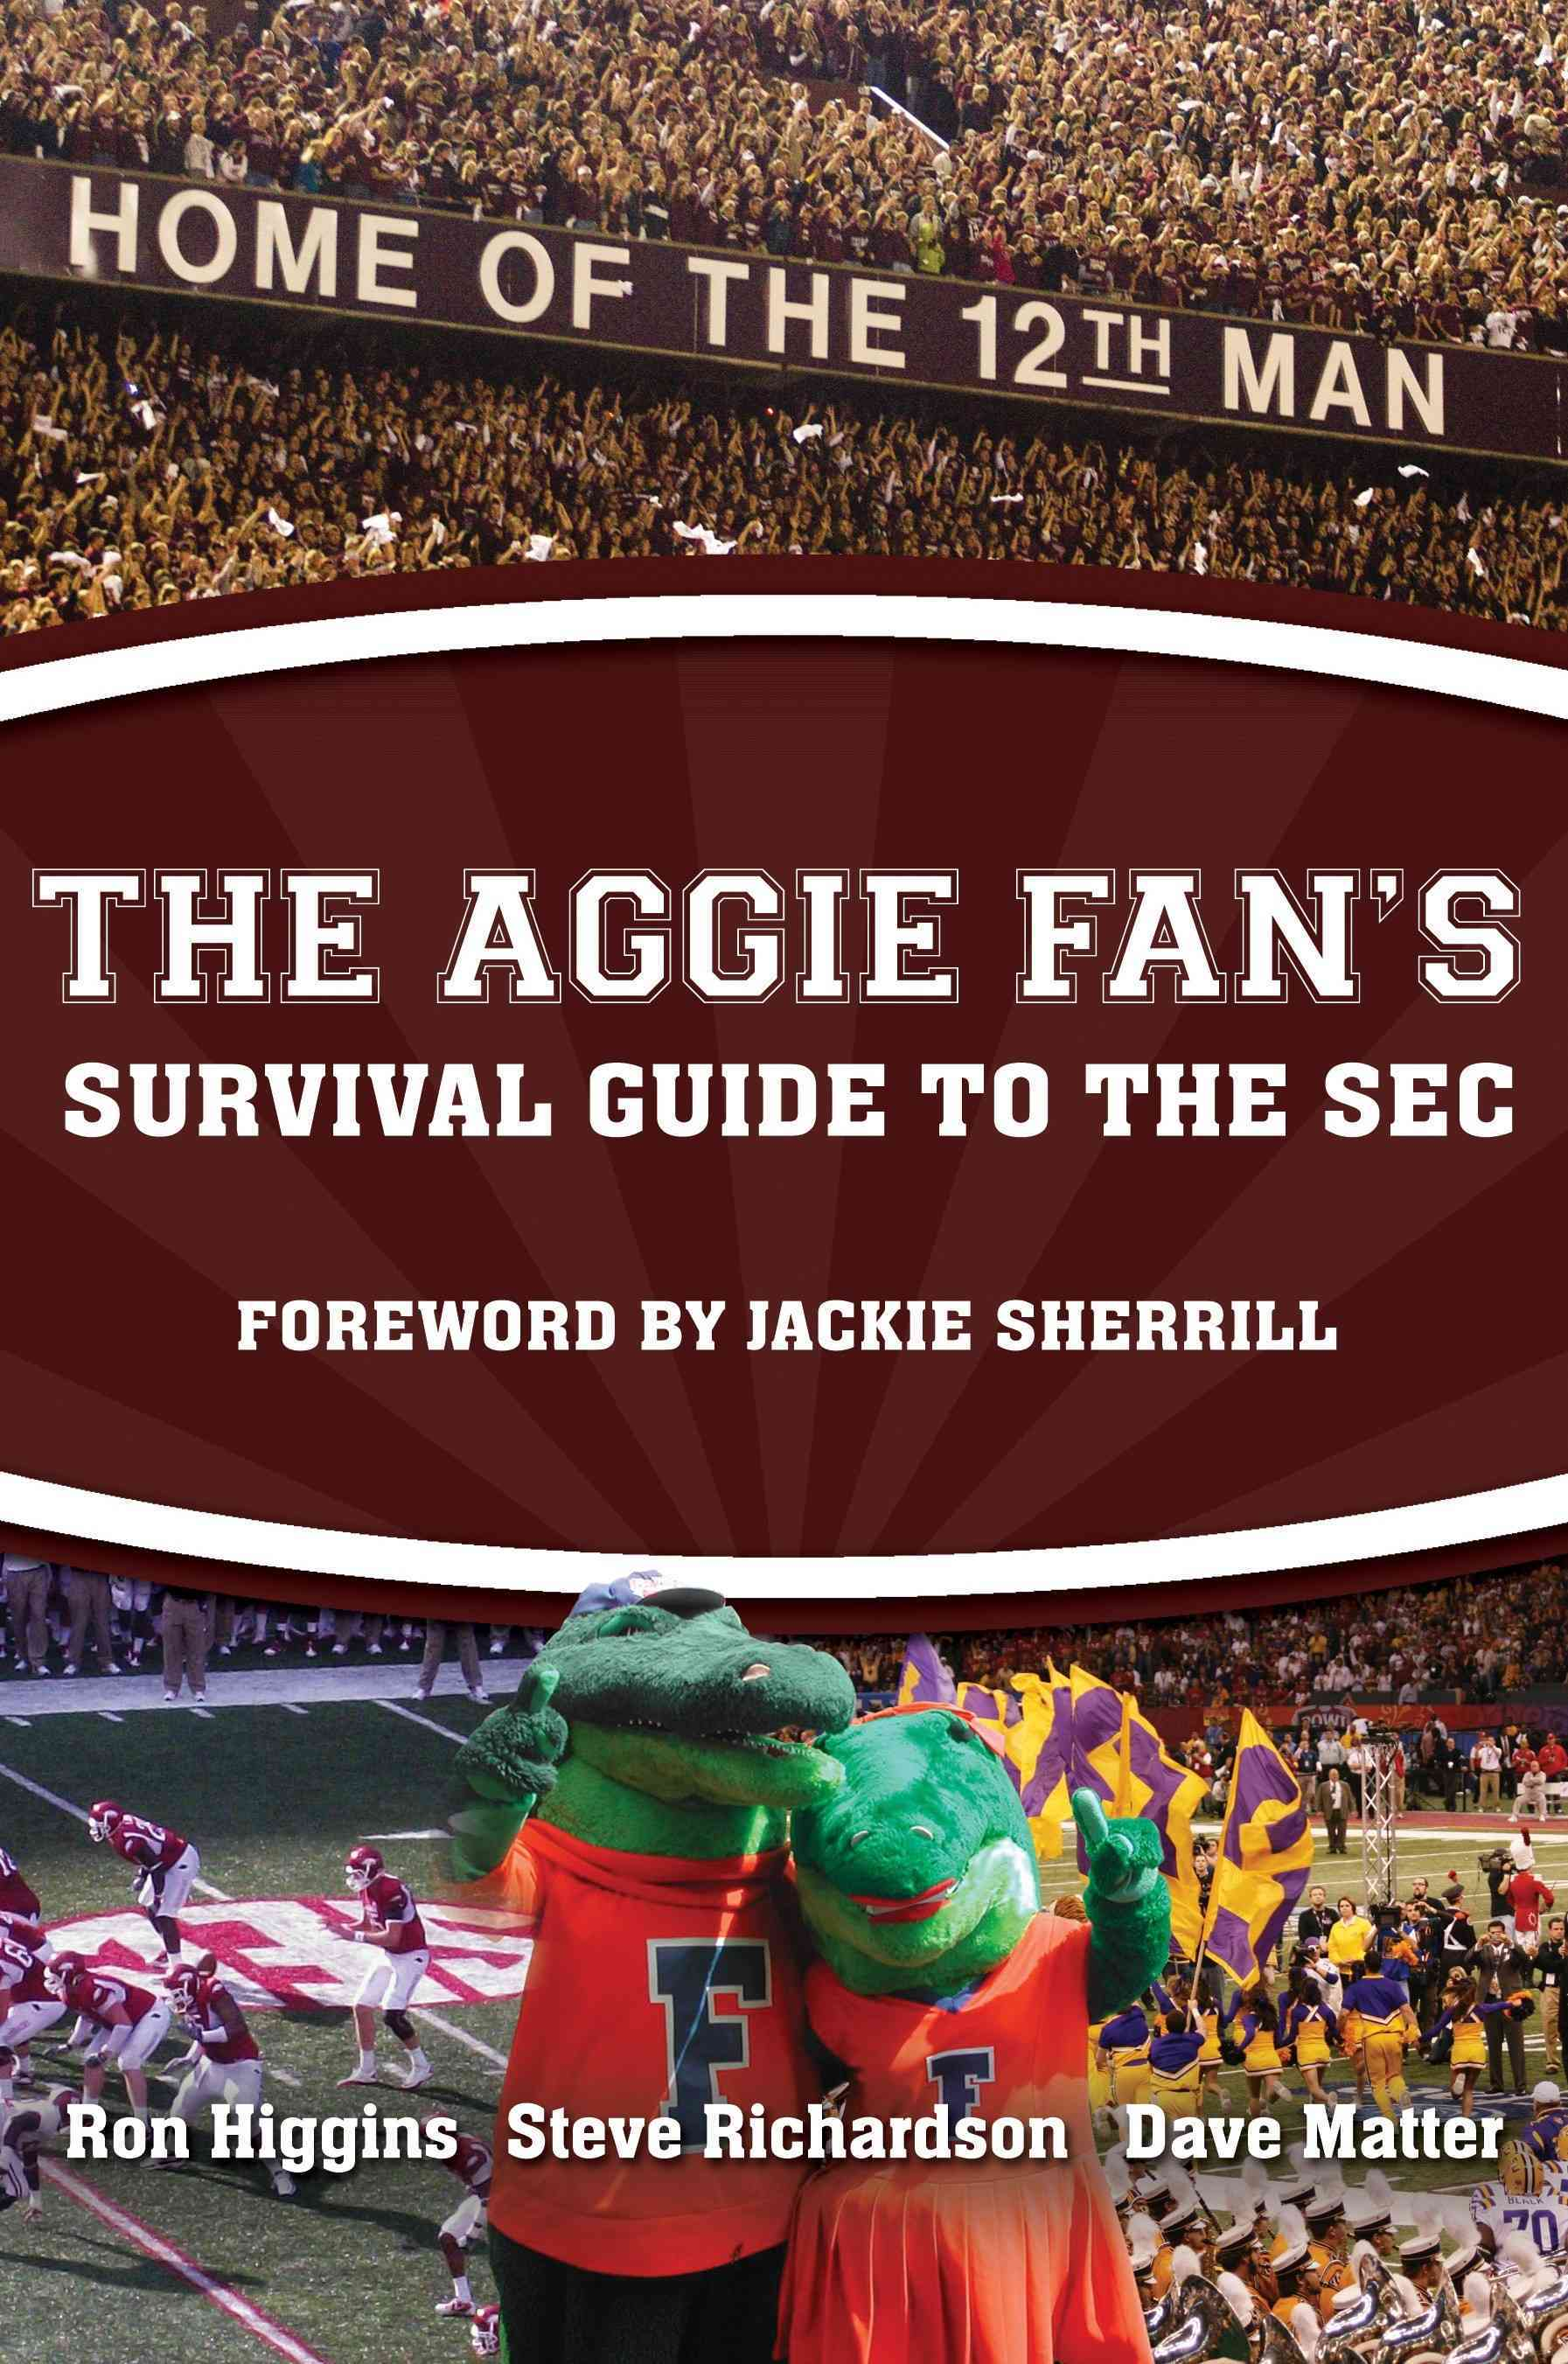 The Aggie Fan's Survival Guide to the SEC (Paperback)